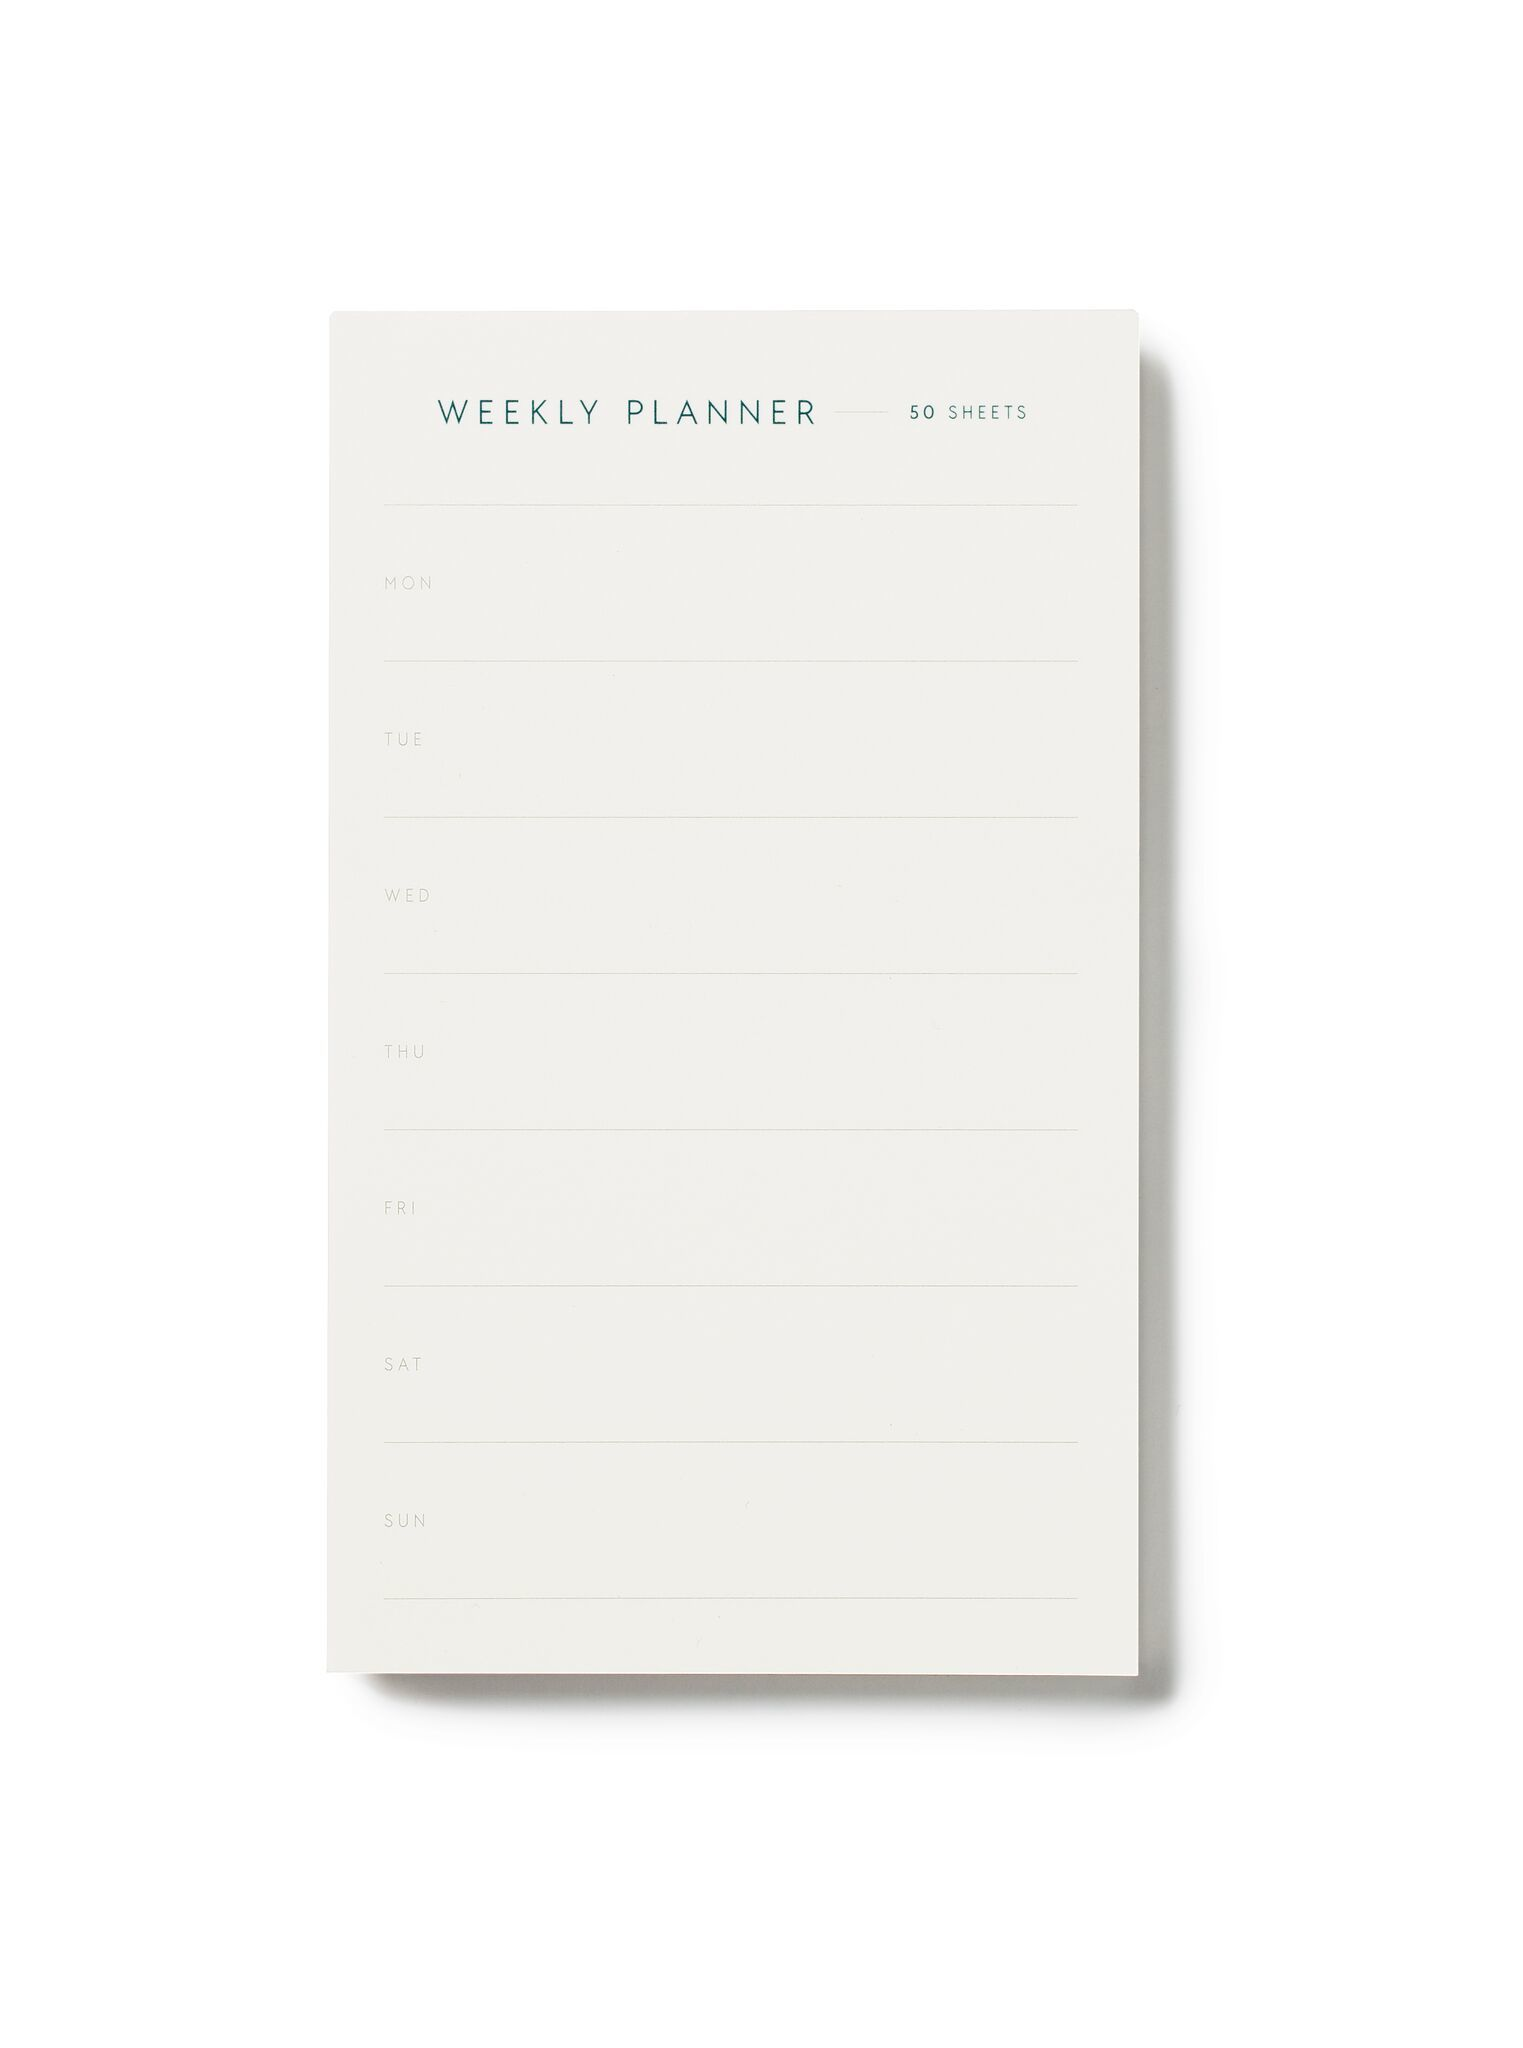 KARTOTEK - Weekly planner small